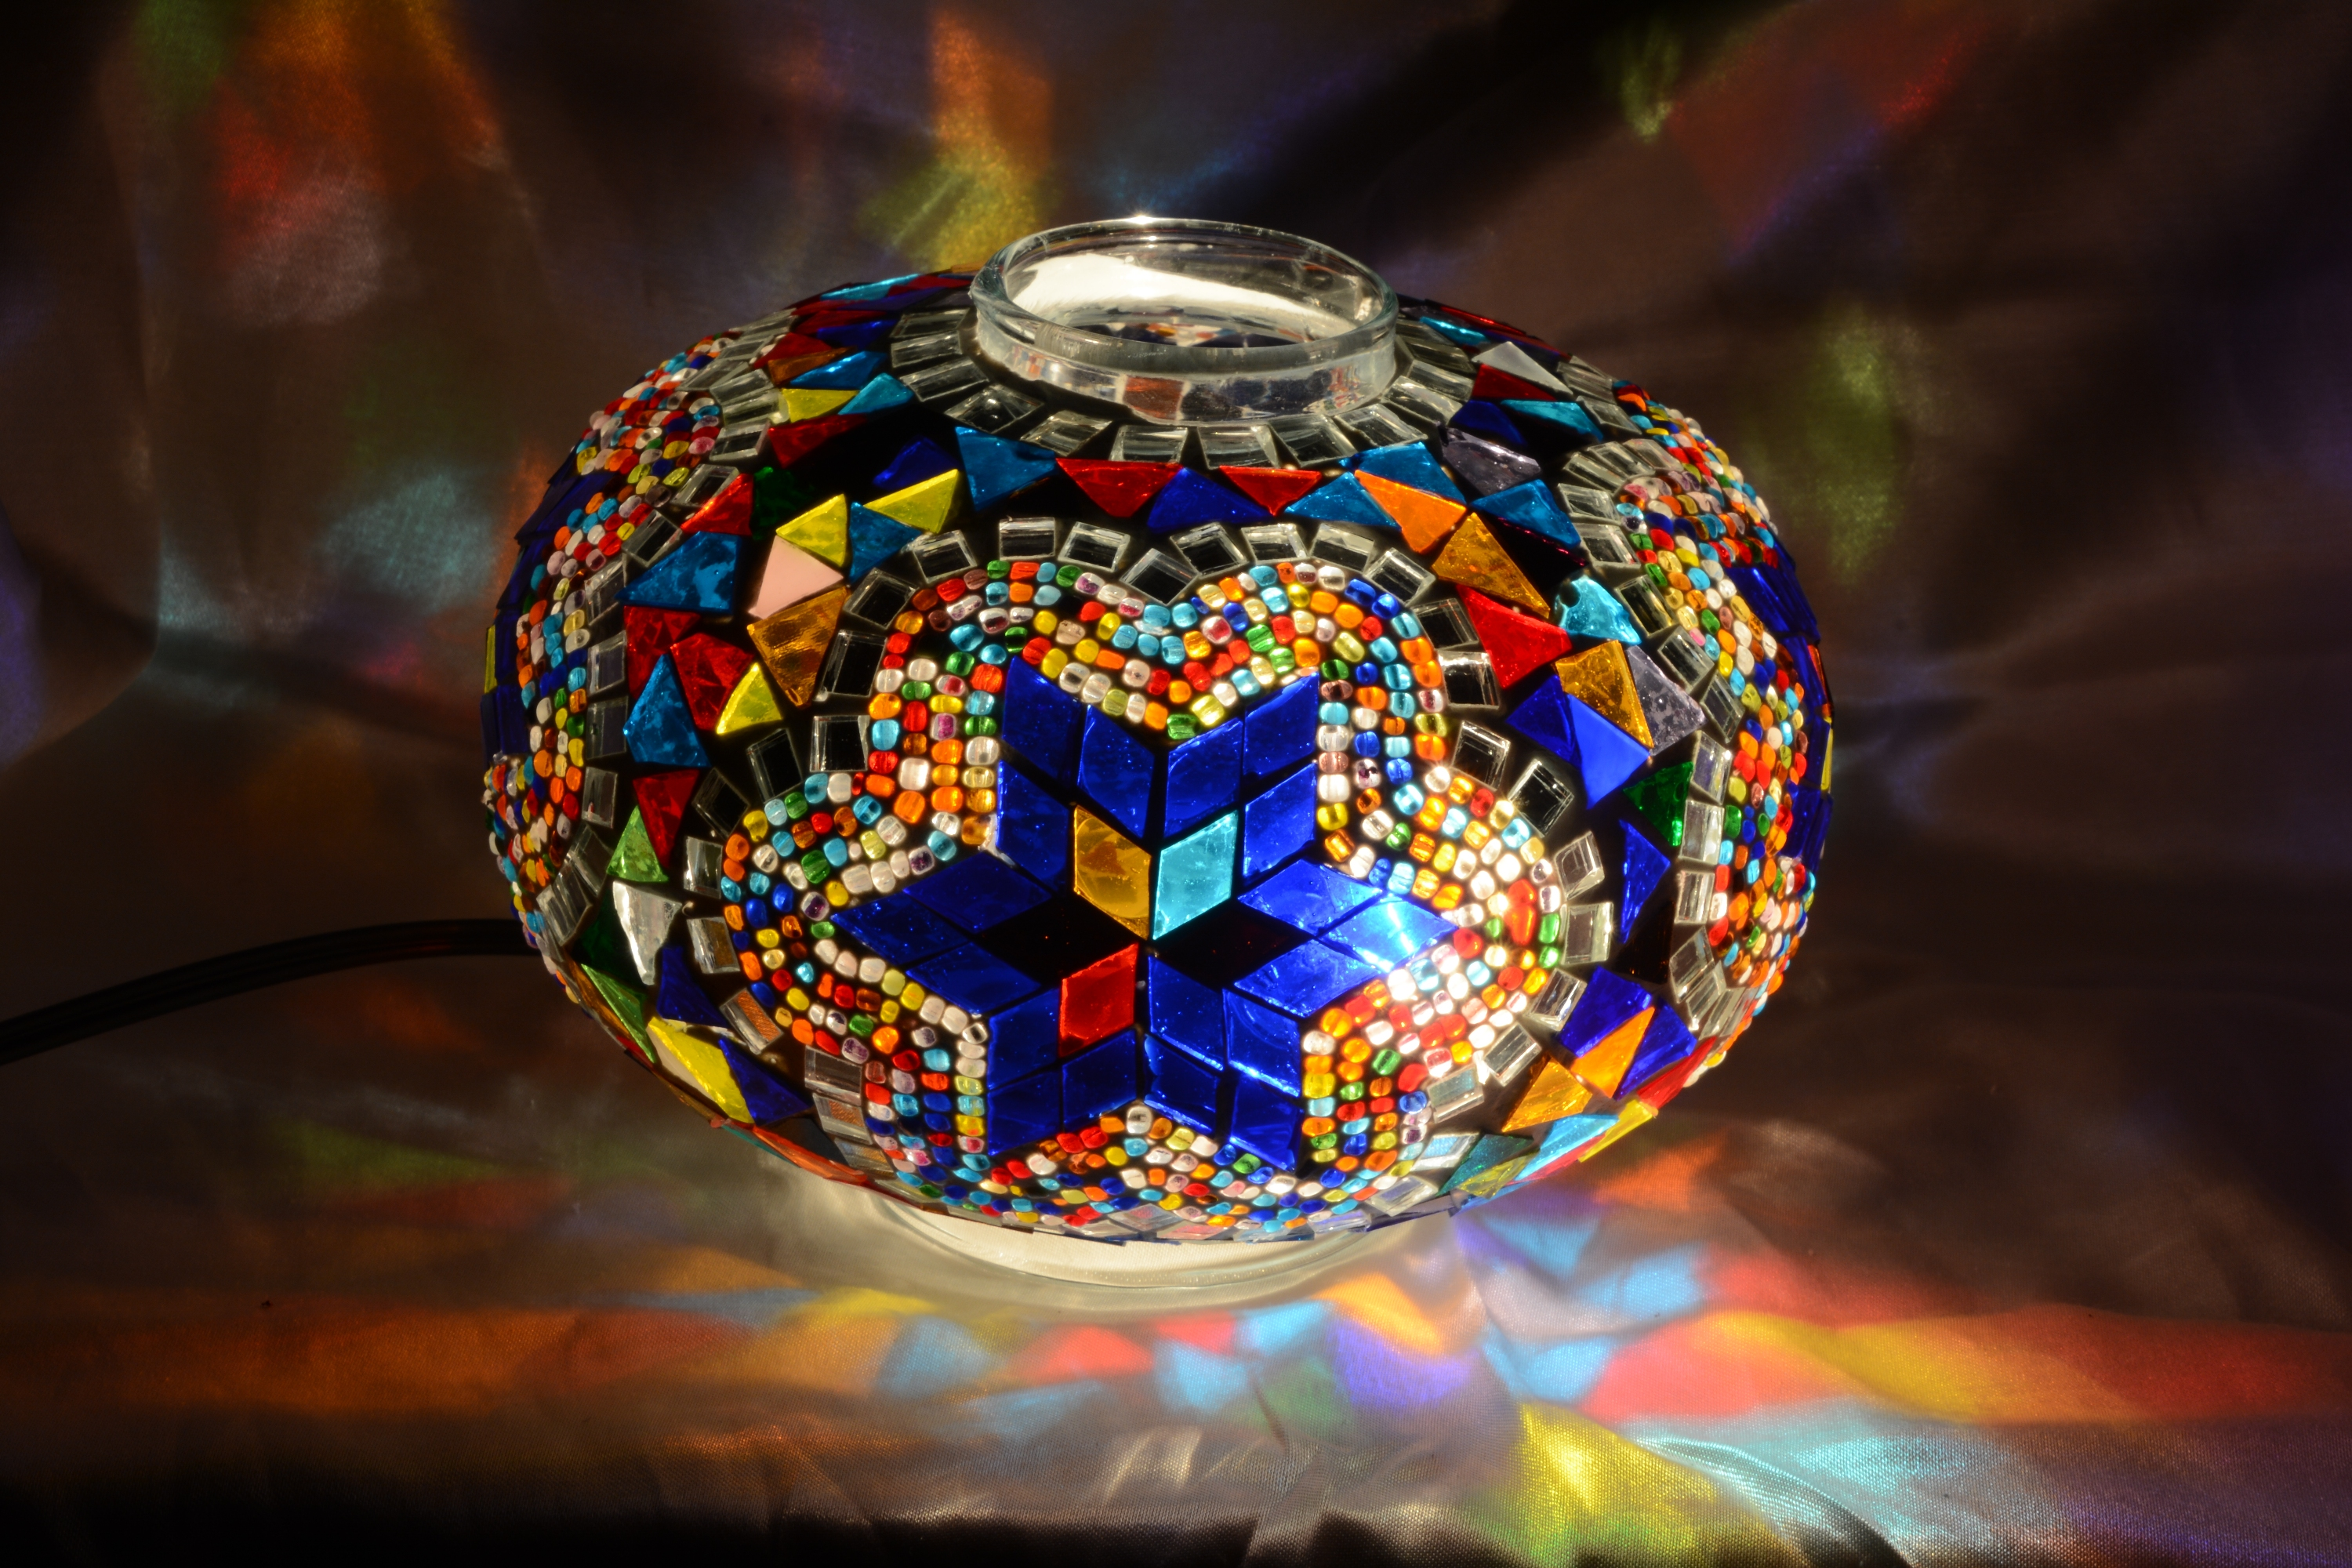 3 size mosaic lamp glass model